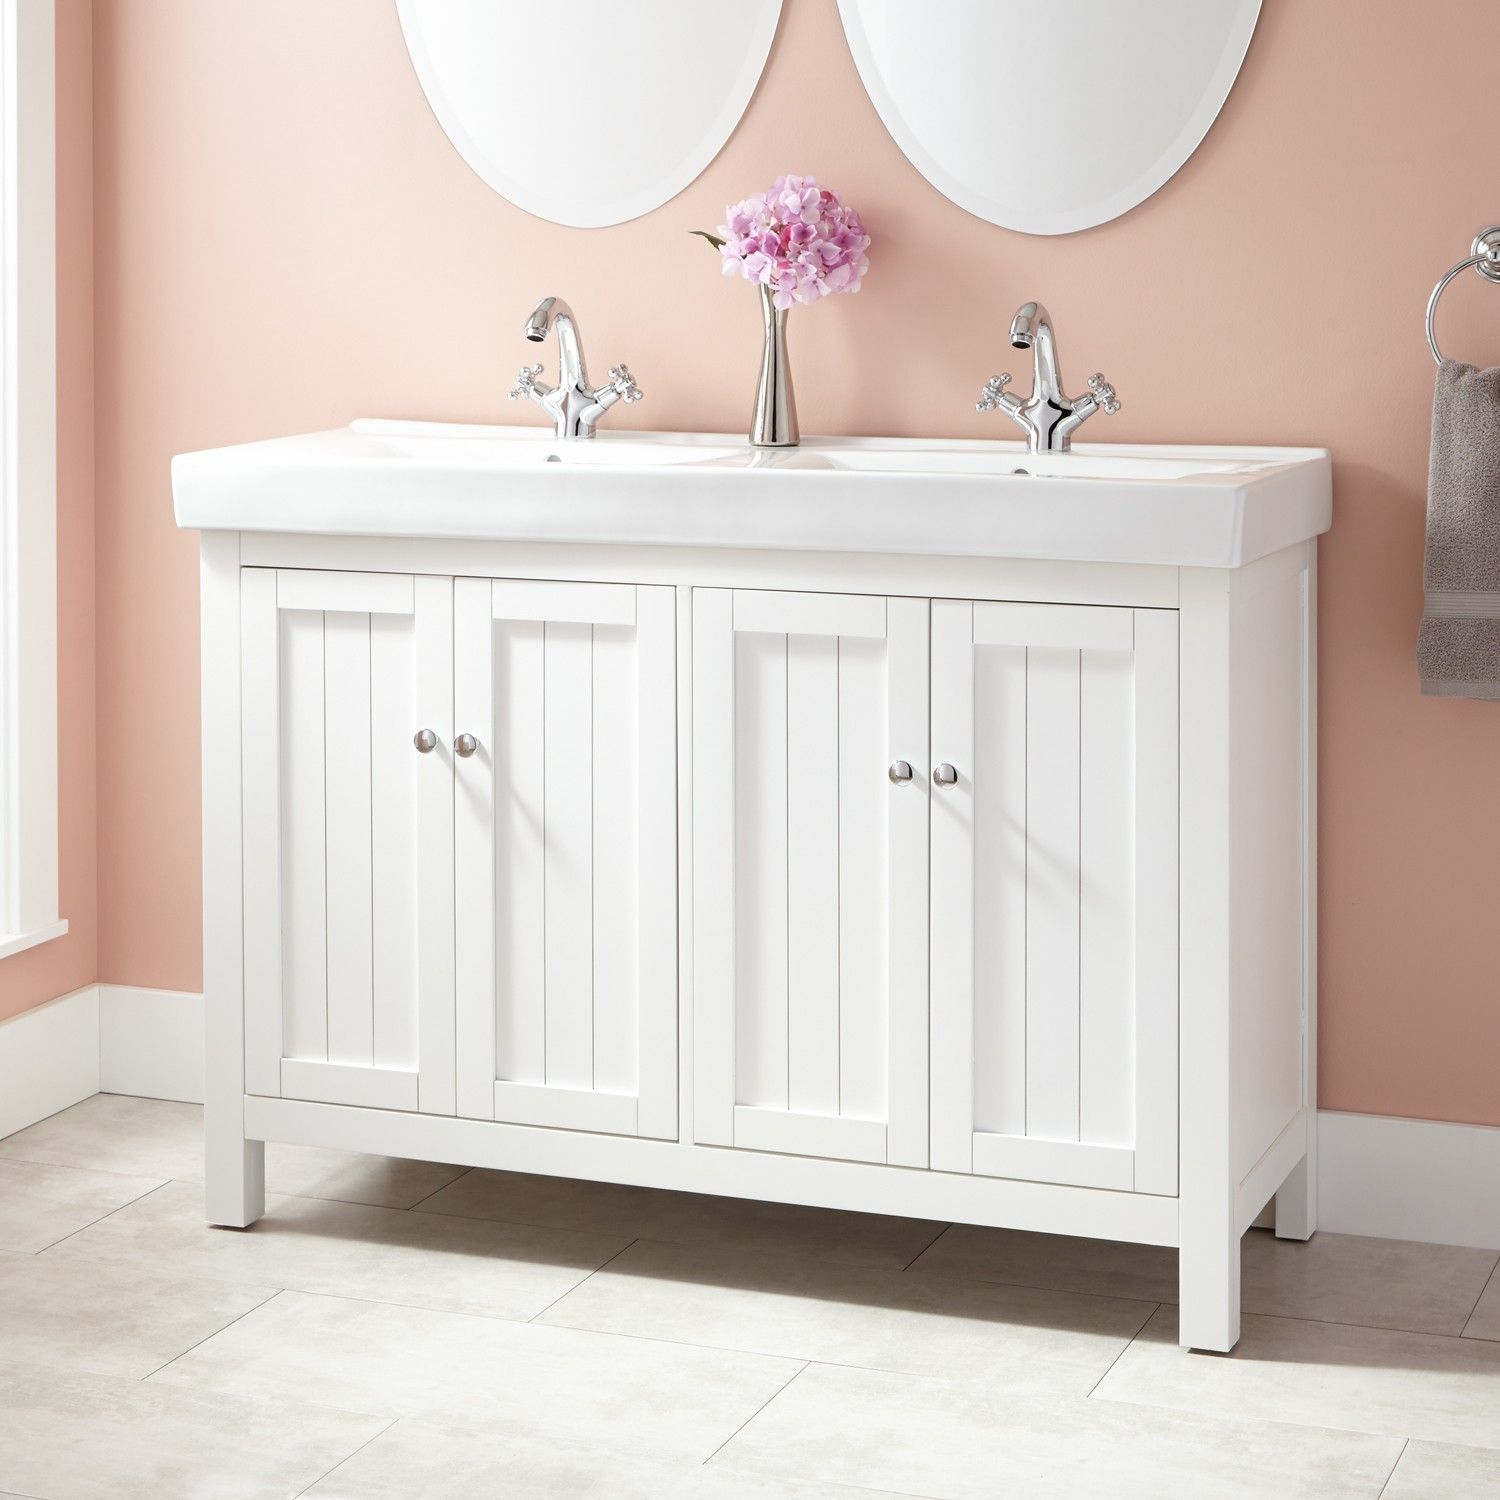 depot simple vanity top inch lowes style improvement cabinets vanities home antique unique tips white decorating set ideas ivory cabinet finish canada bathroom wondrous design to x creative andover